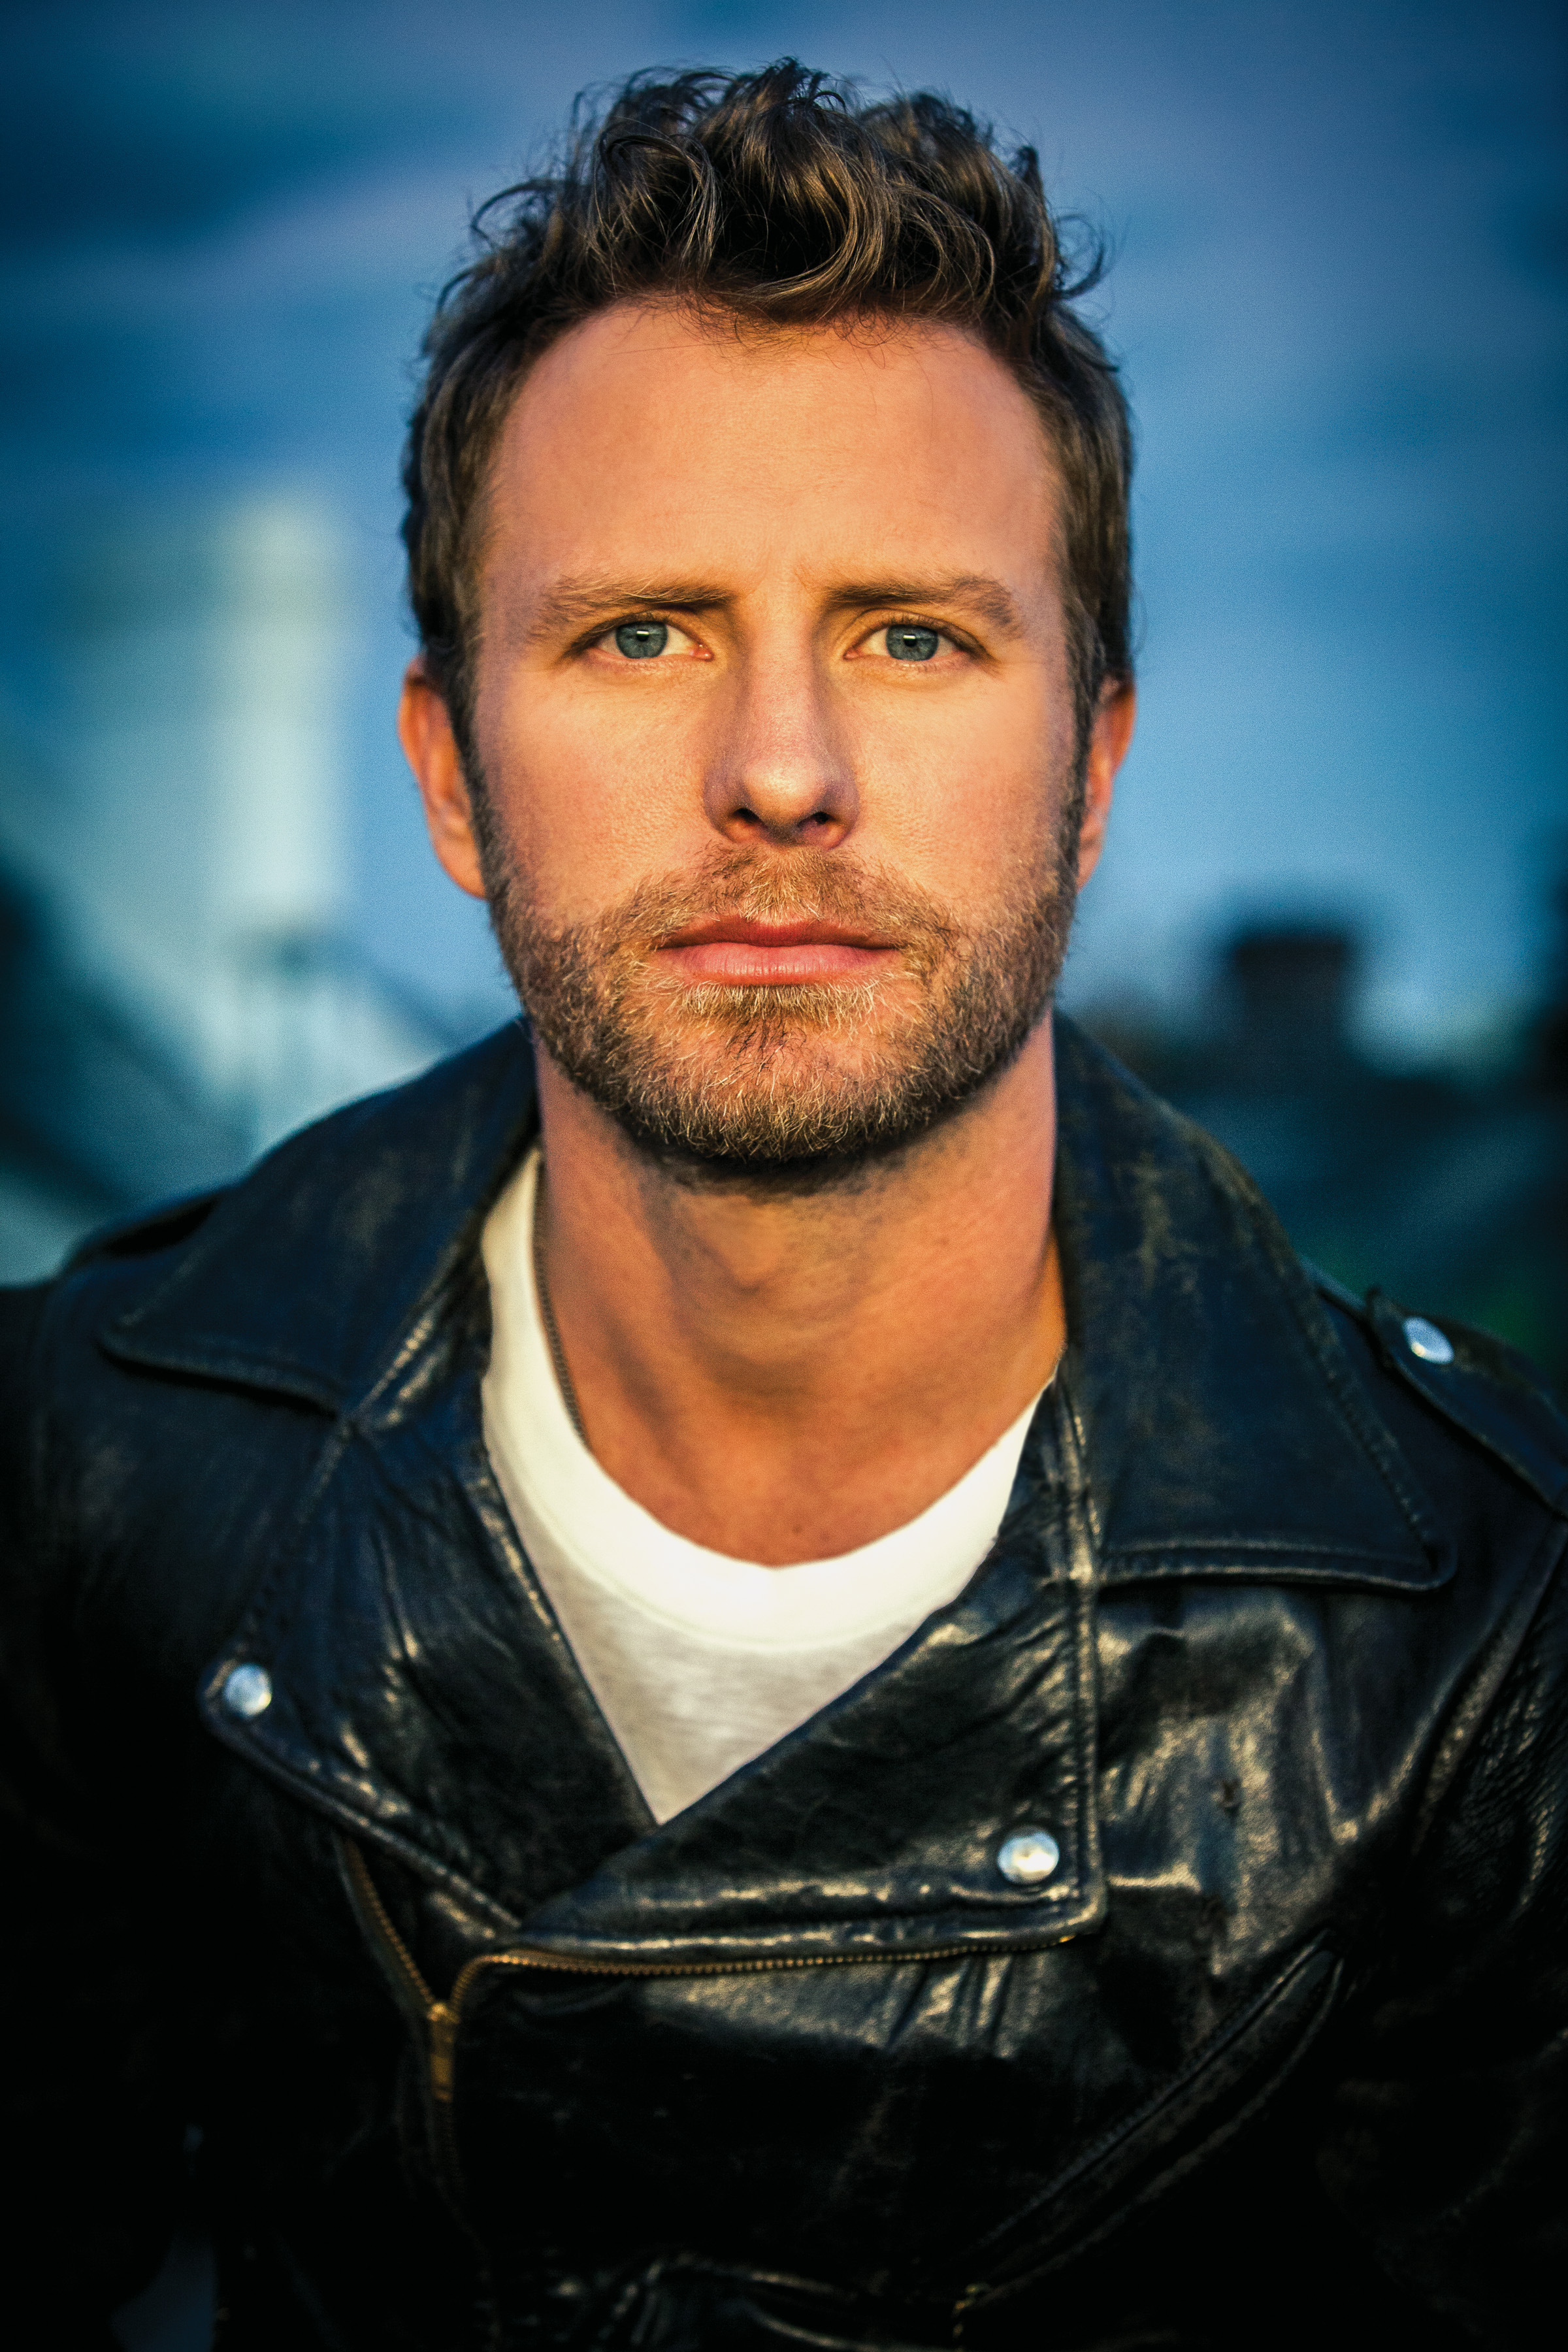 CONCERT ANNOUNCEMENT: DIERKS BENTELY at JQH ARENA!